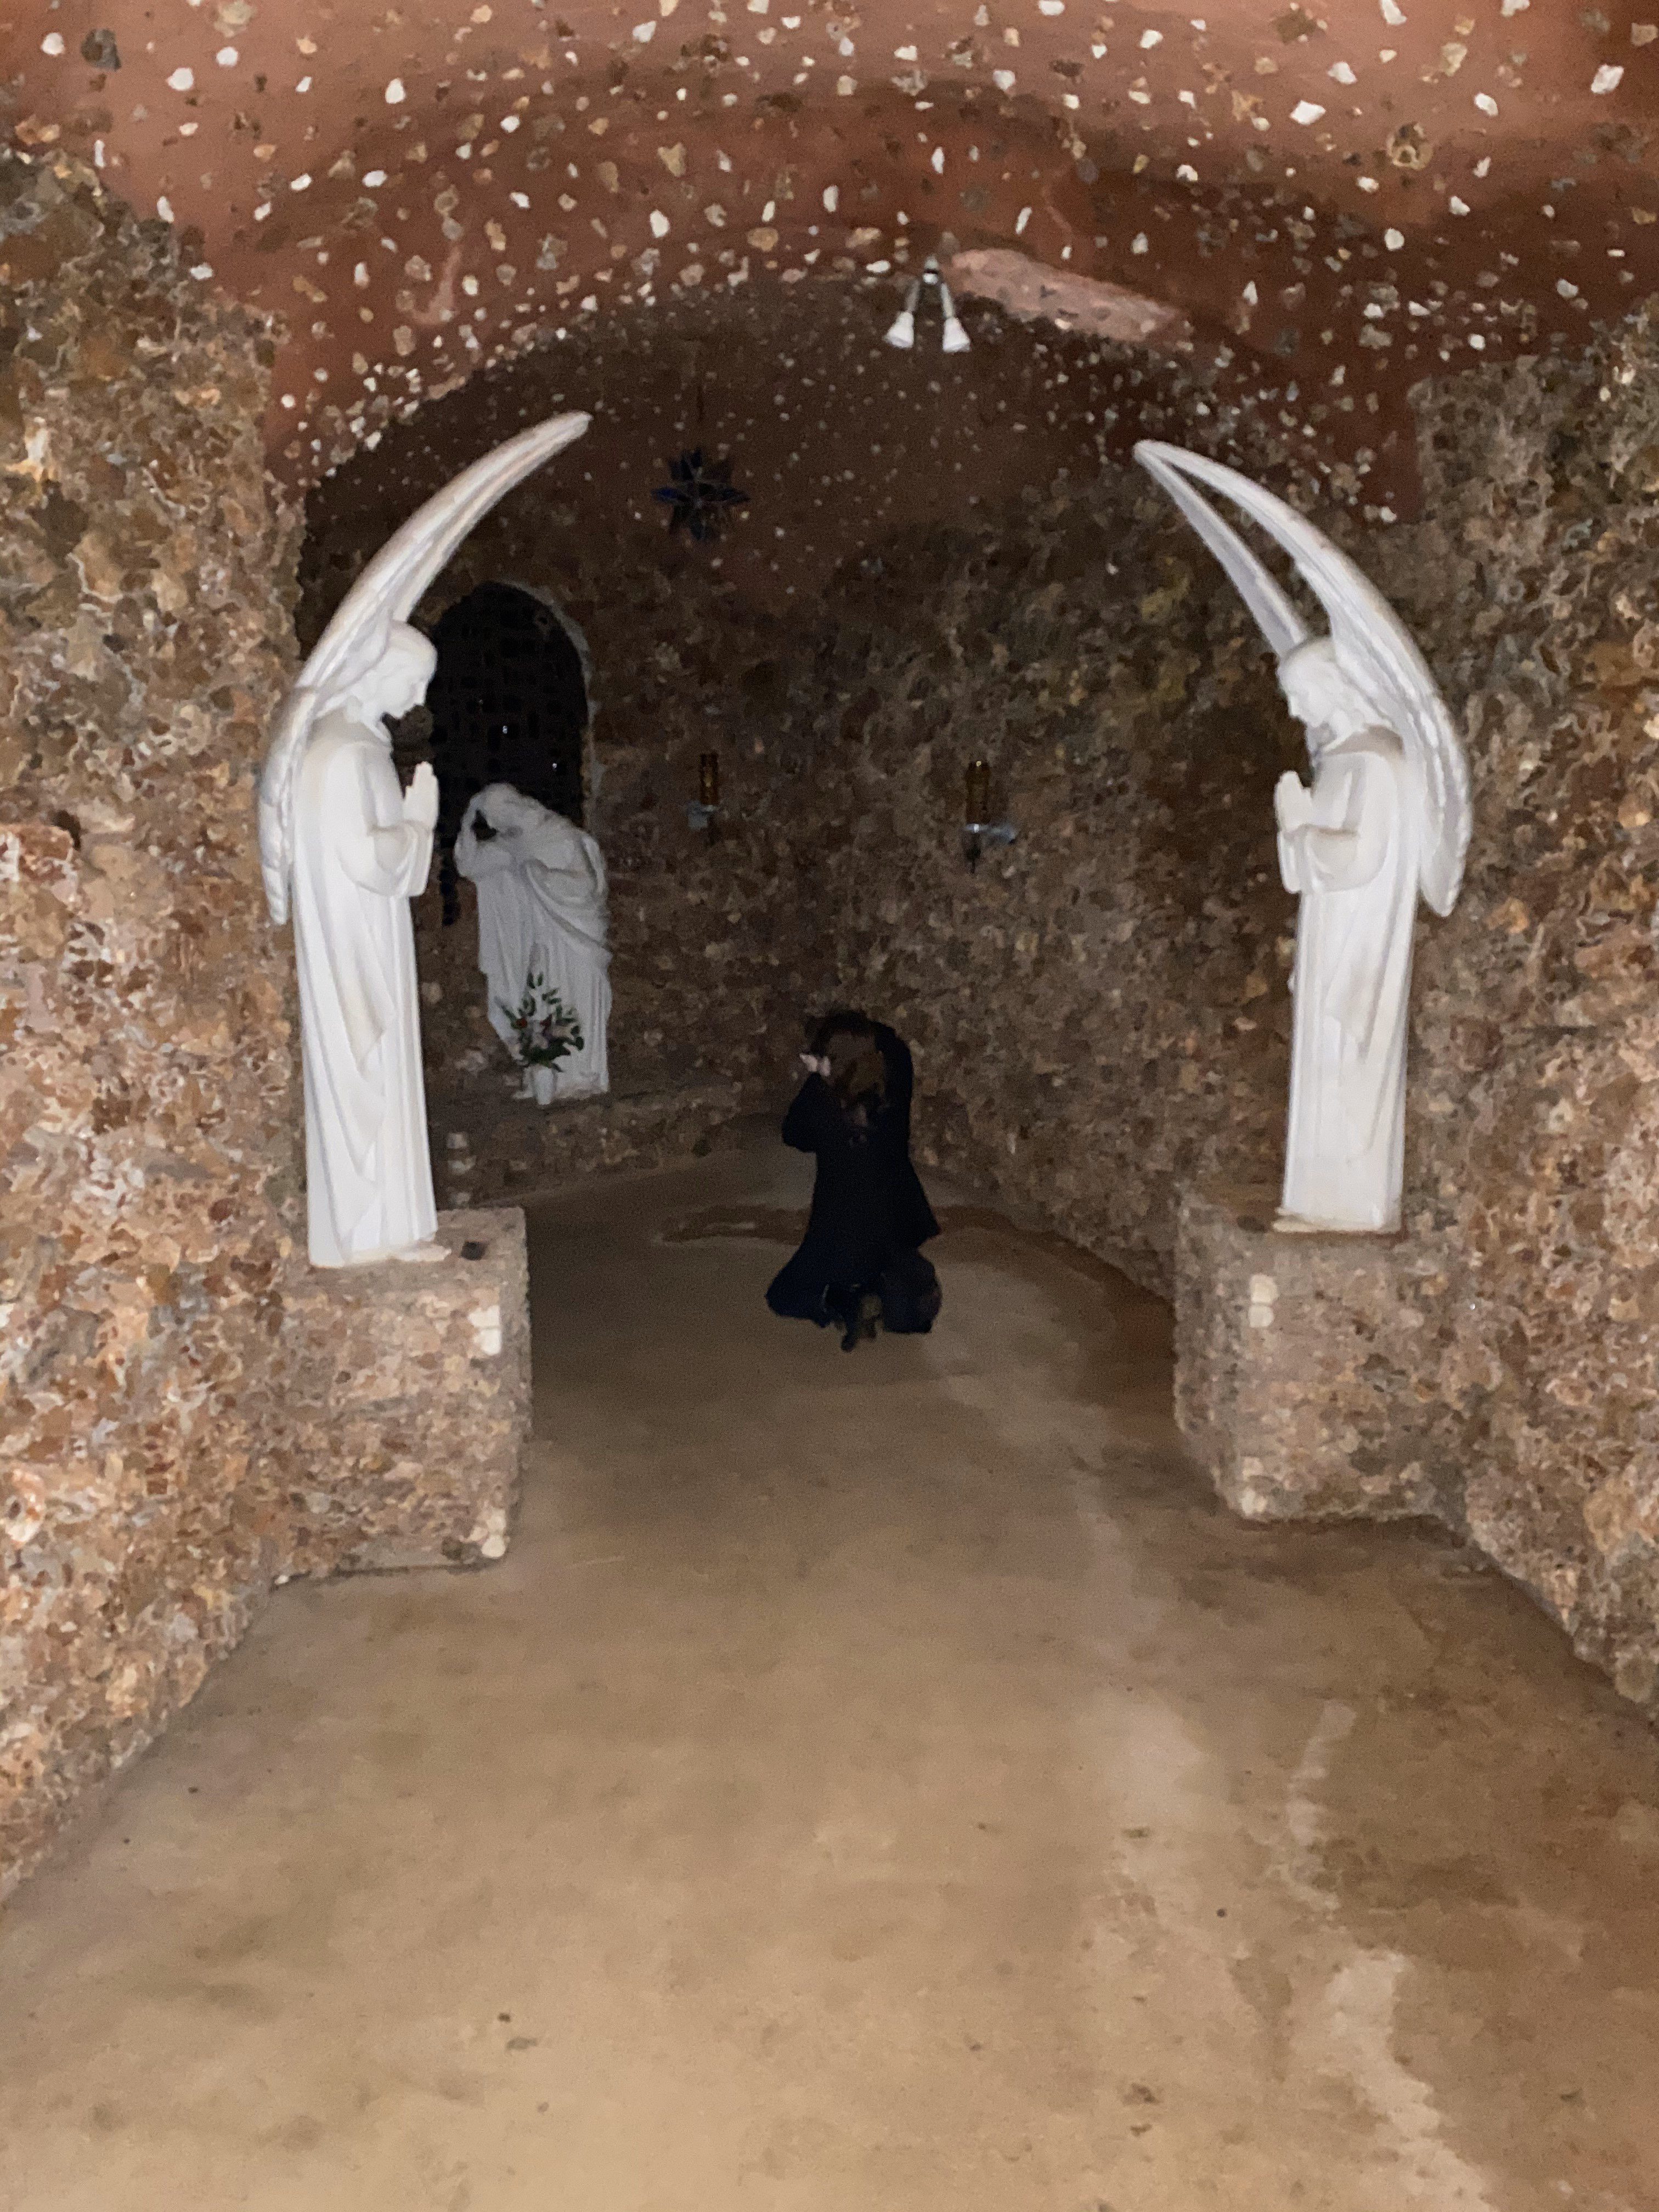 photo from behind of a man in a black suit with a brunette mullet kneeling to photograph a statue of mary. he is in an underground cave made of sponge rock, flanked on each side by two statues of angels praying.